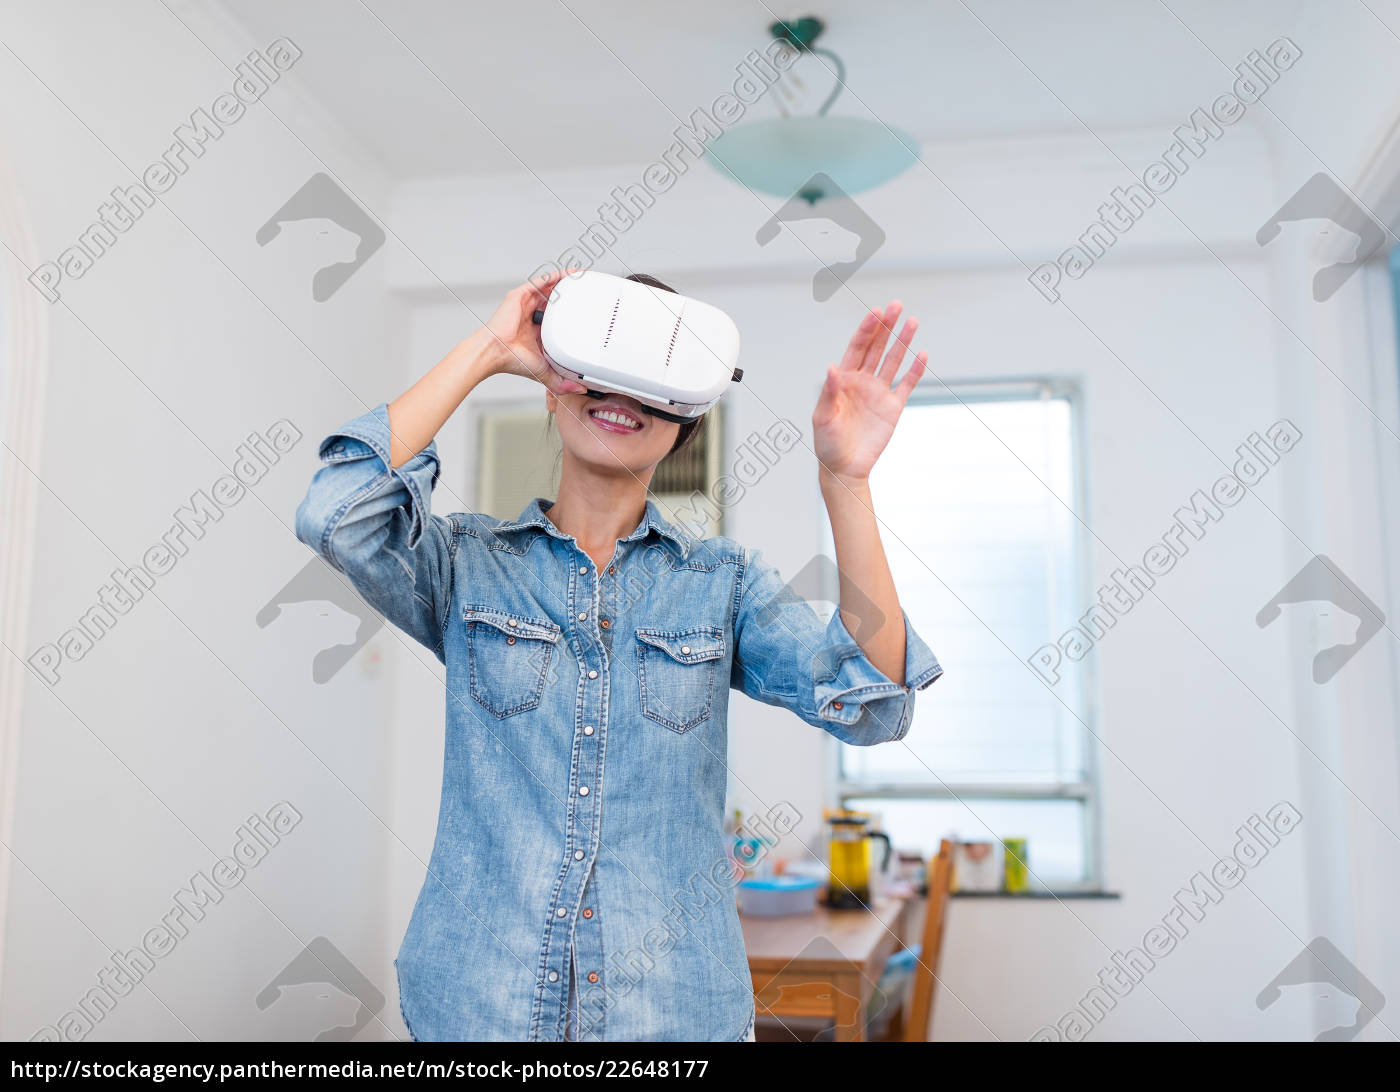 woman, watching, with, vr, device - 22648177